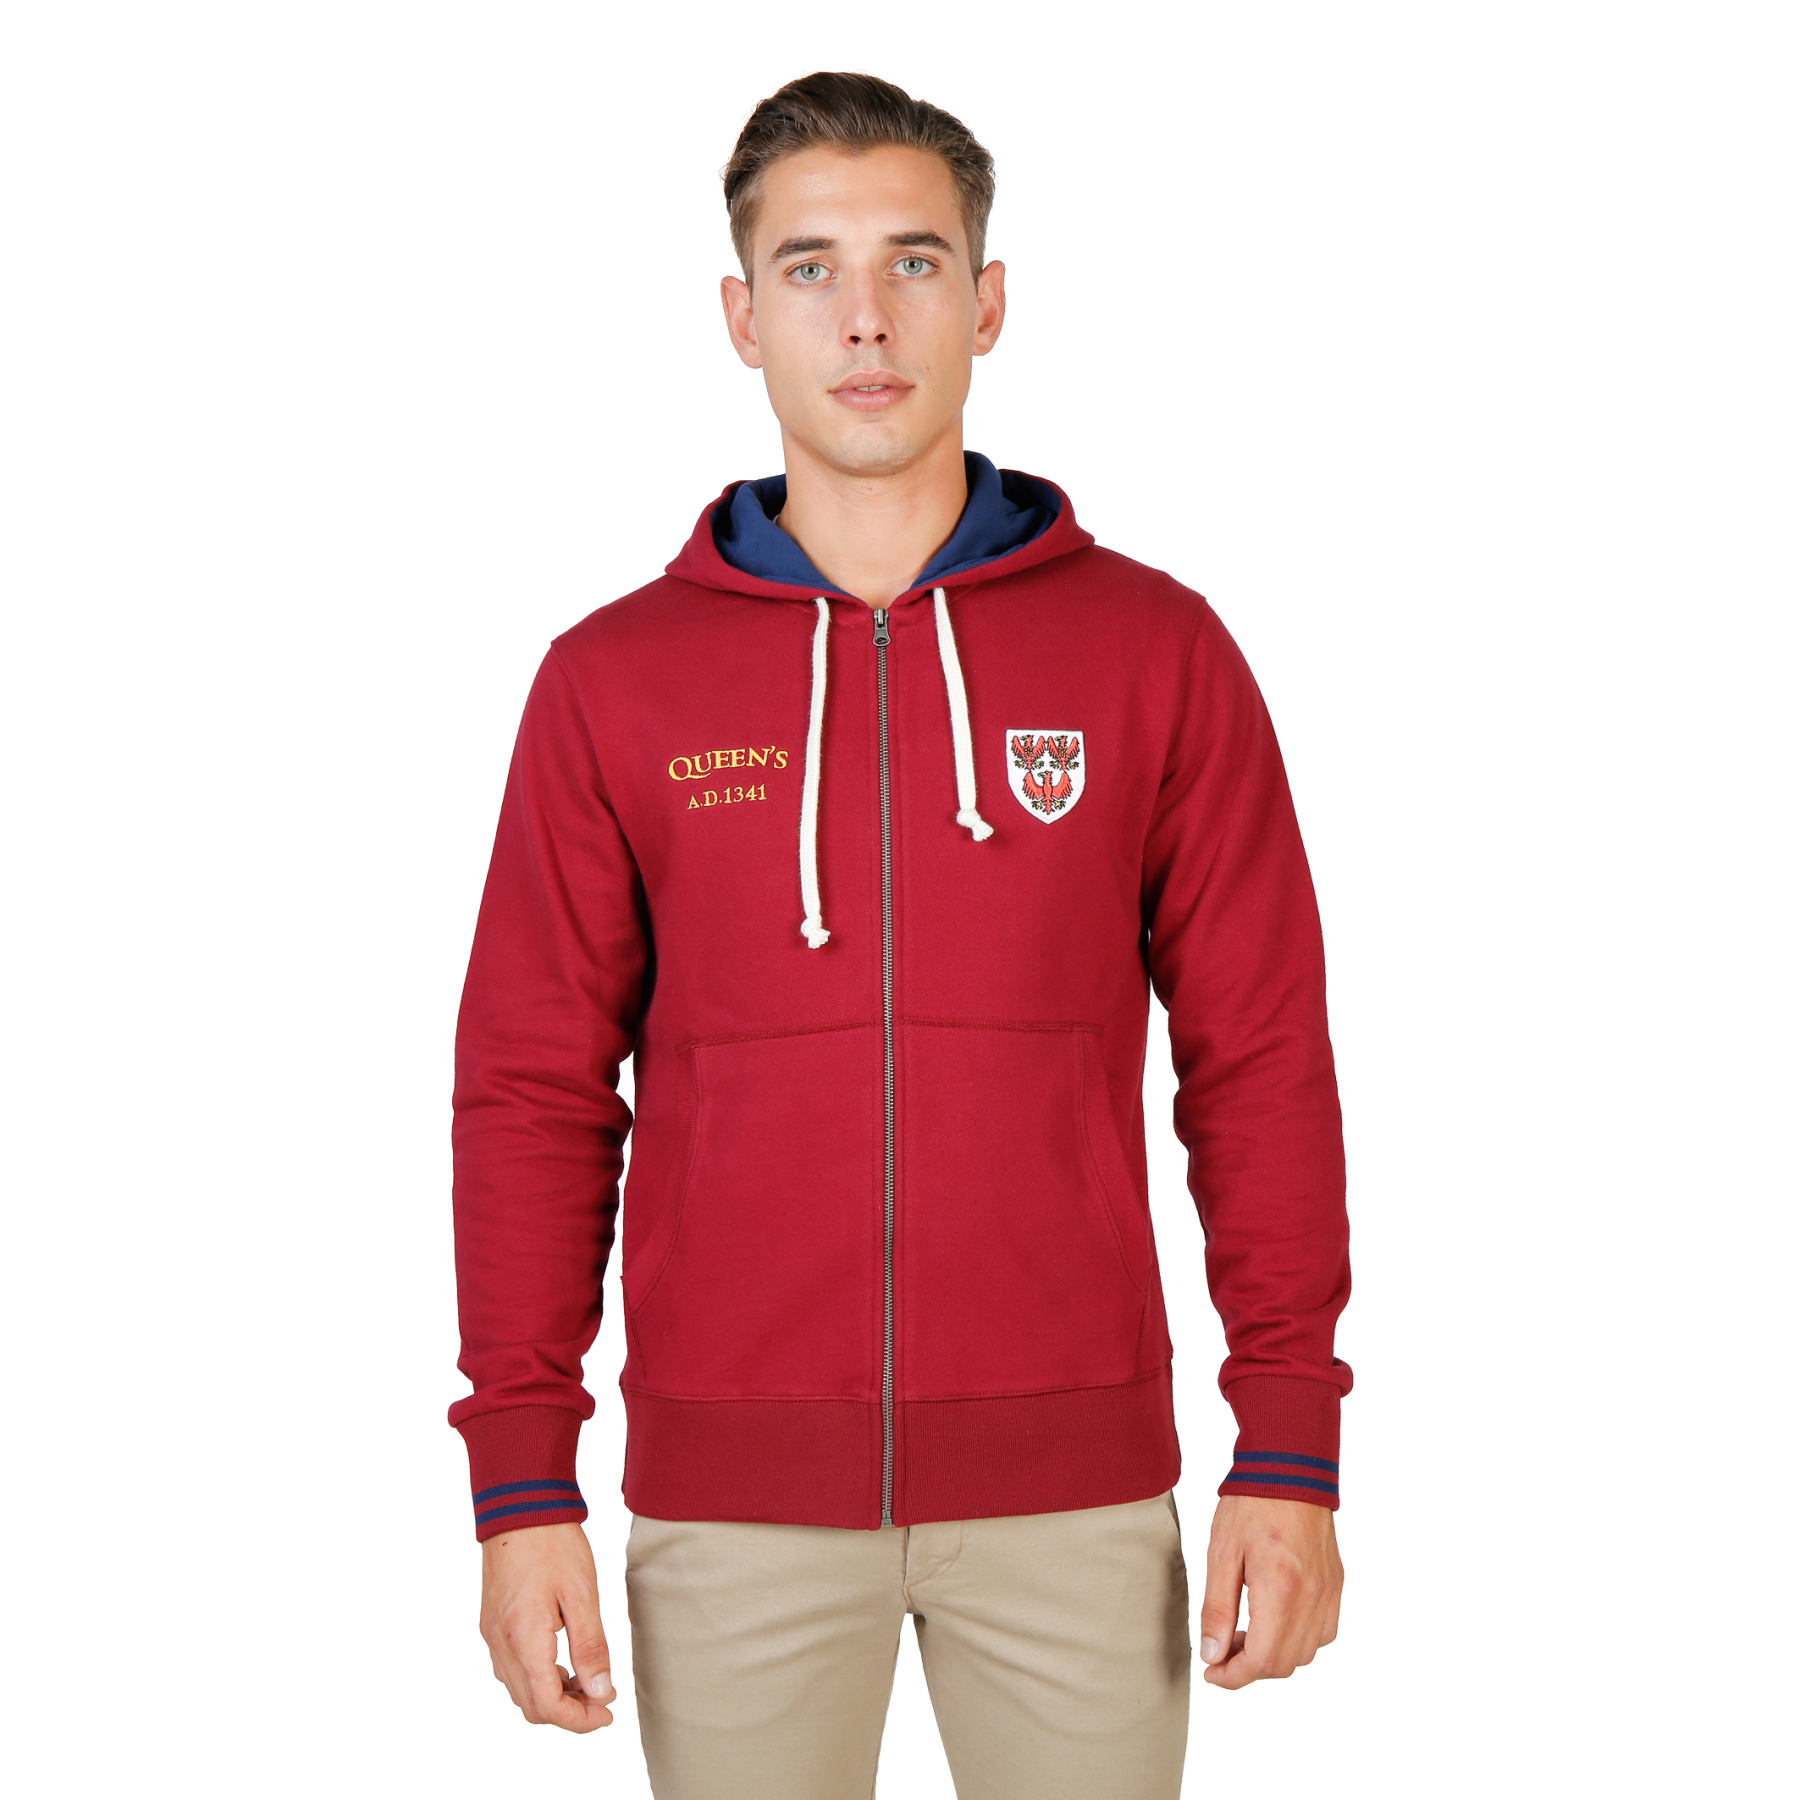 Oxford University - QUEENS-HOODIE